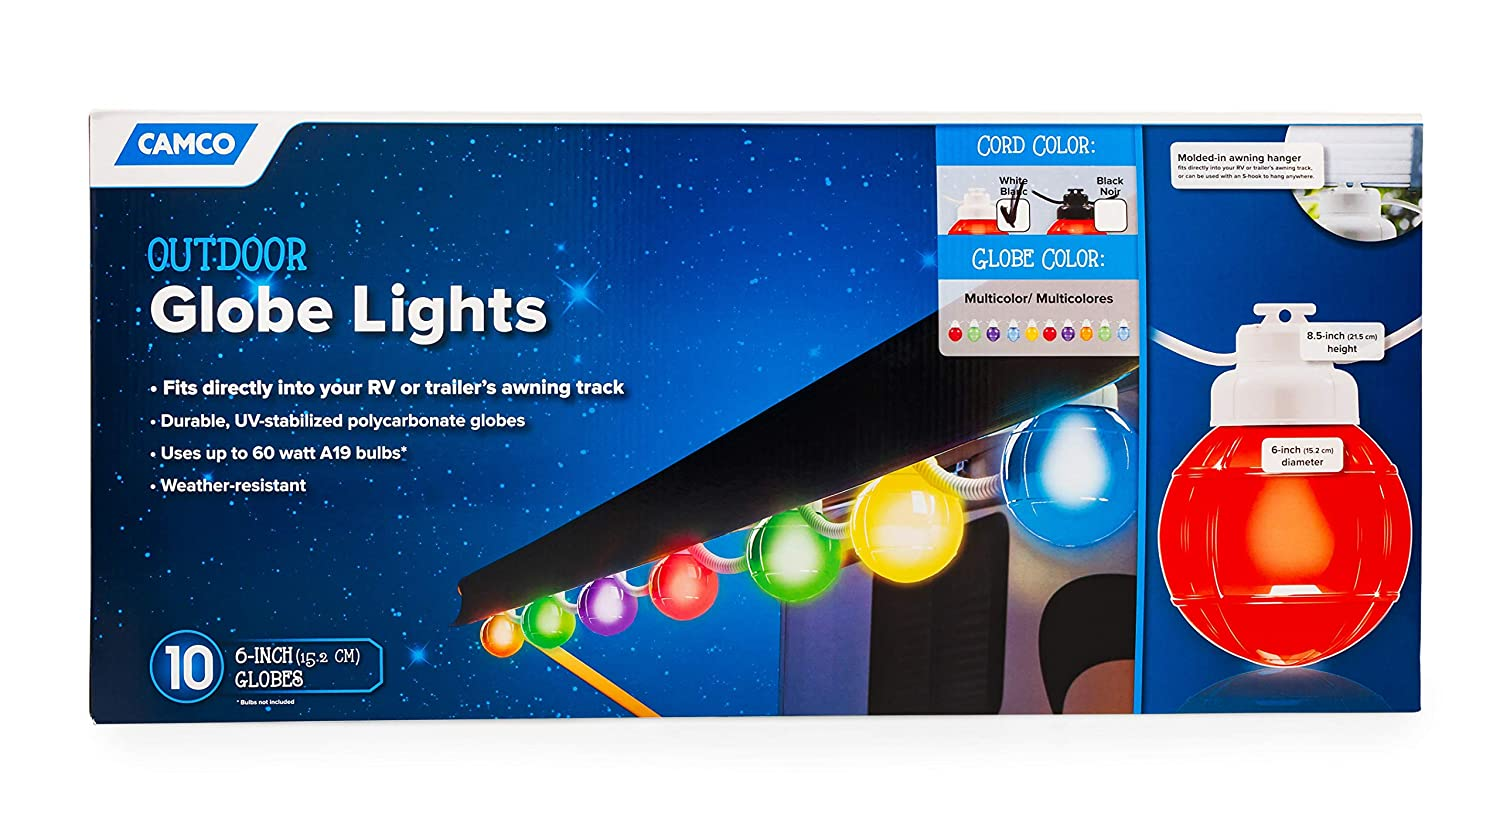 Best LED RV Awning String Lights of 2019 - Upgrade the Mood